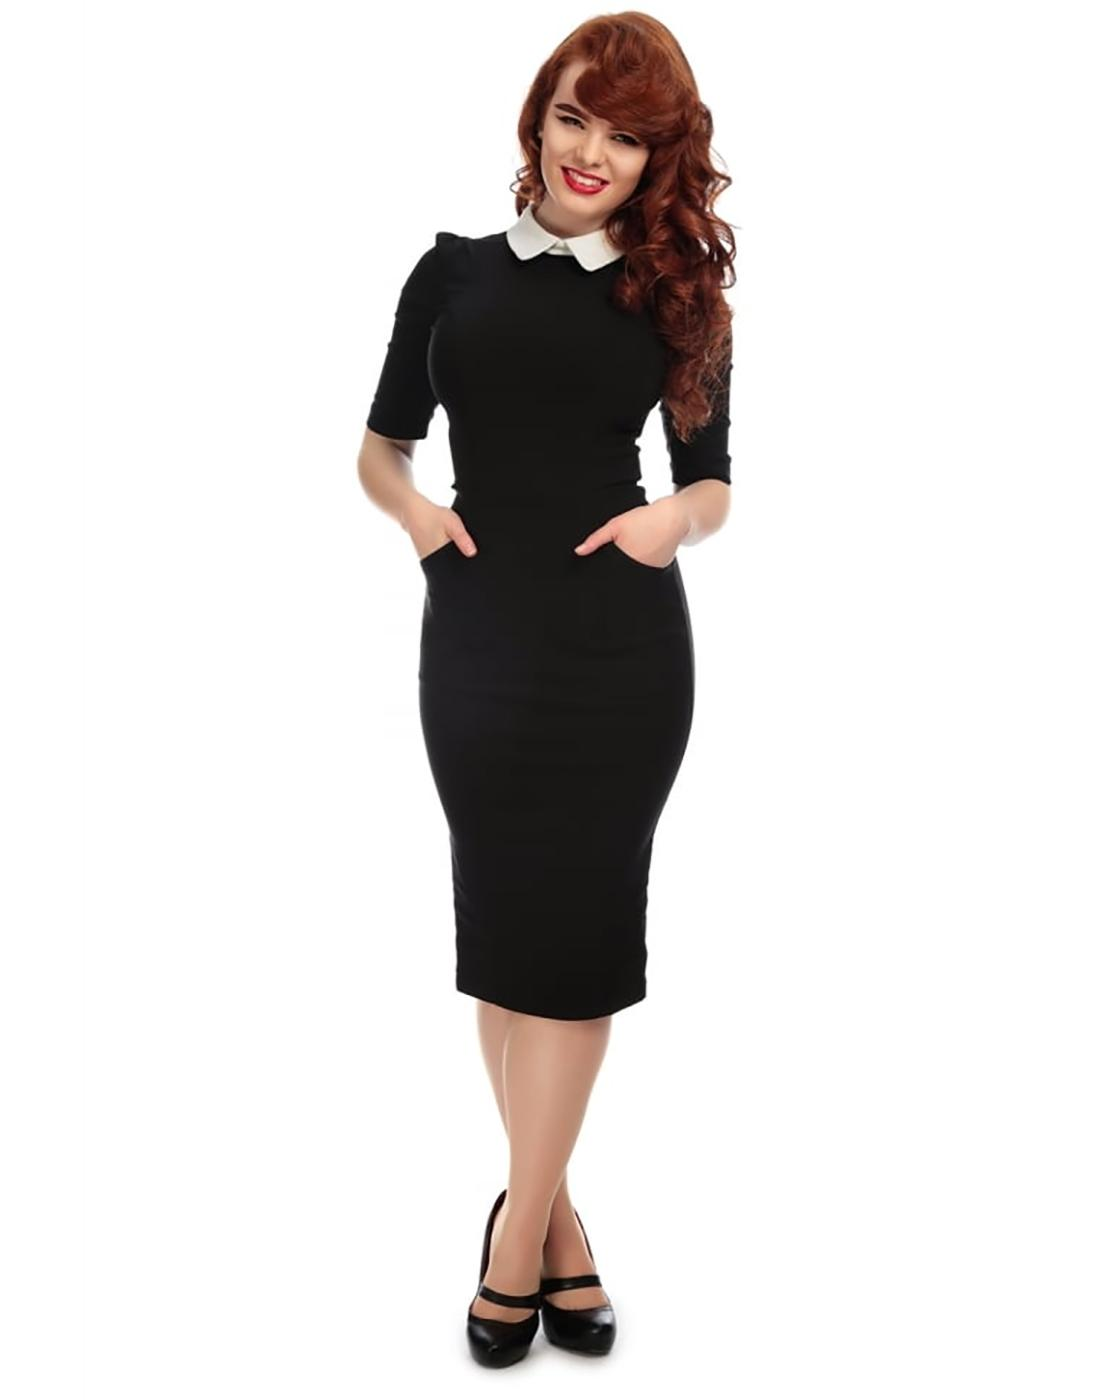 Winona COLLECTIF Retro Mod Pencil Dress in Black